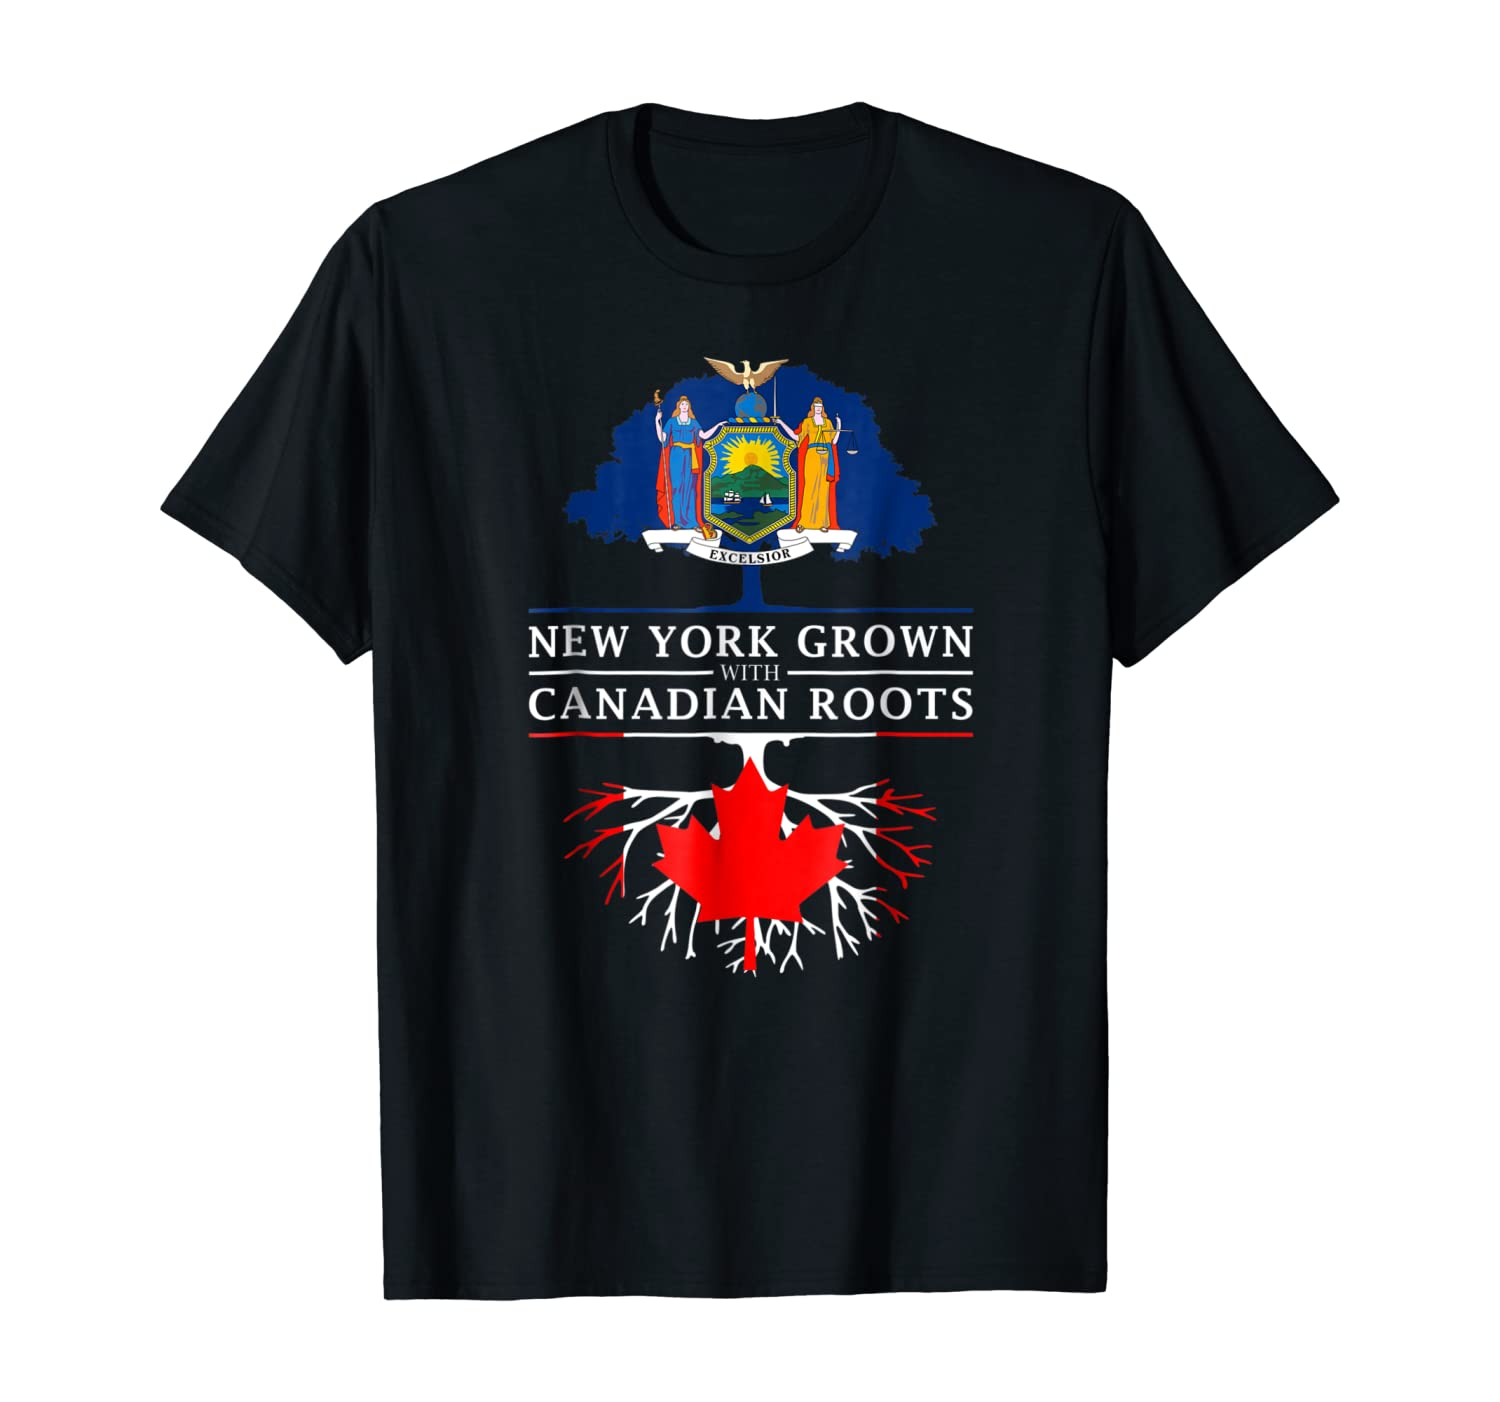 New York Grown with Canadian Roots - Canada T-Shirt